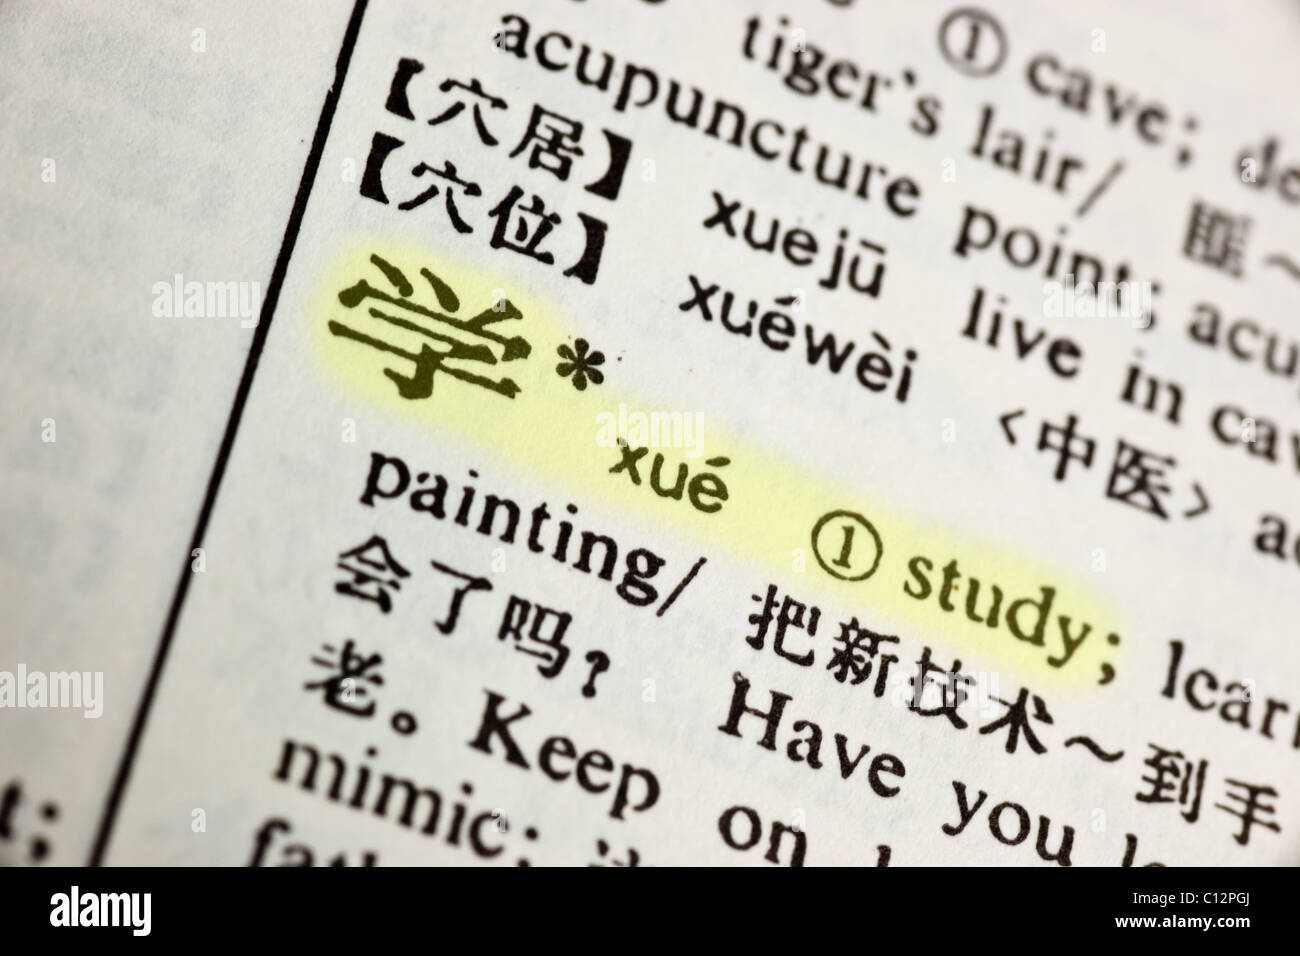 Study written in Chinese in a Chinese-English translation